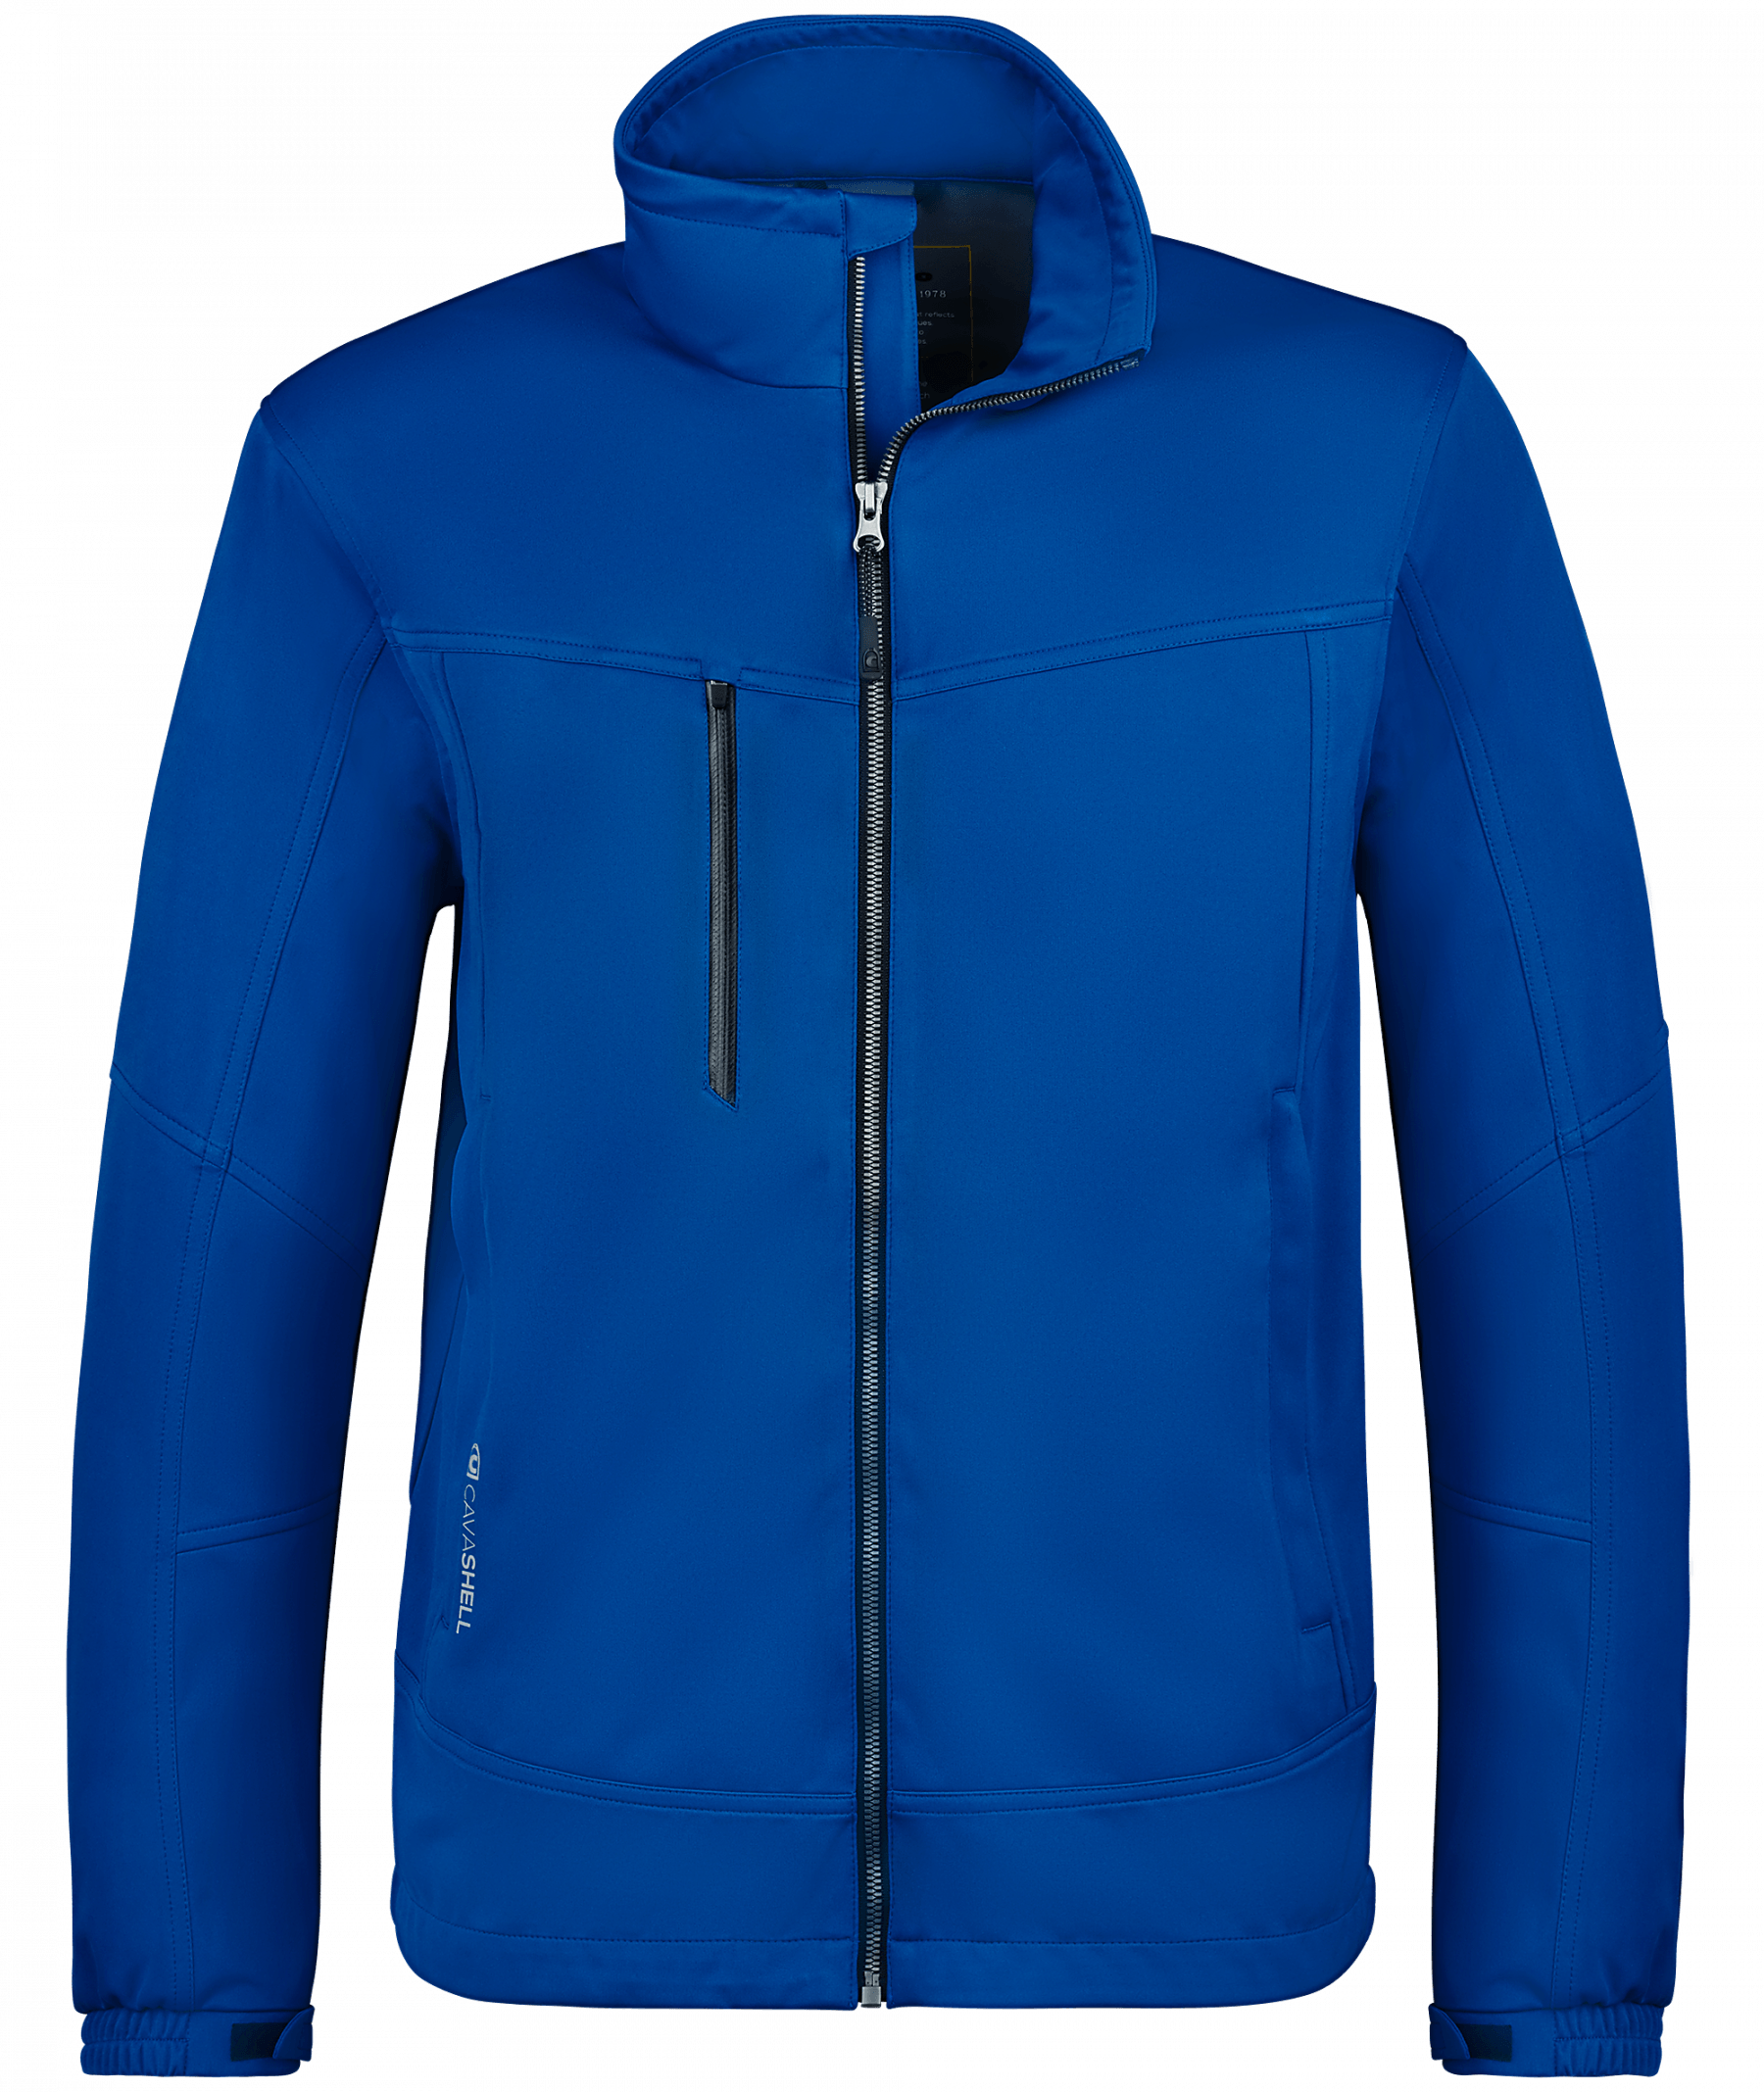 Cavallo Herren Winddichte Softshelljacke Ian in Cosmic Blue, Gr. S